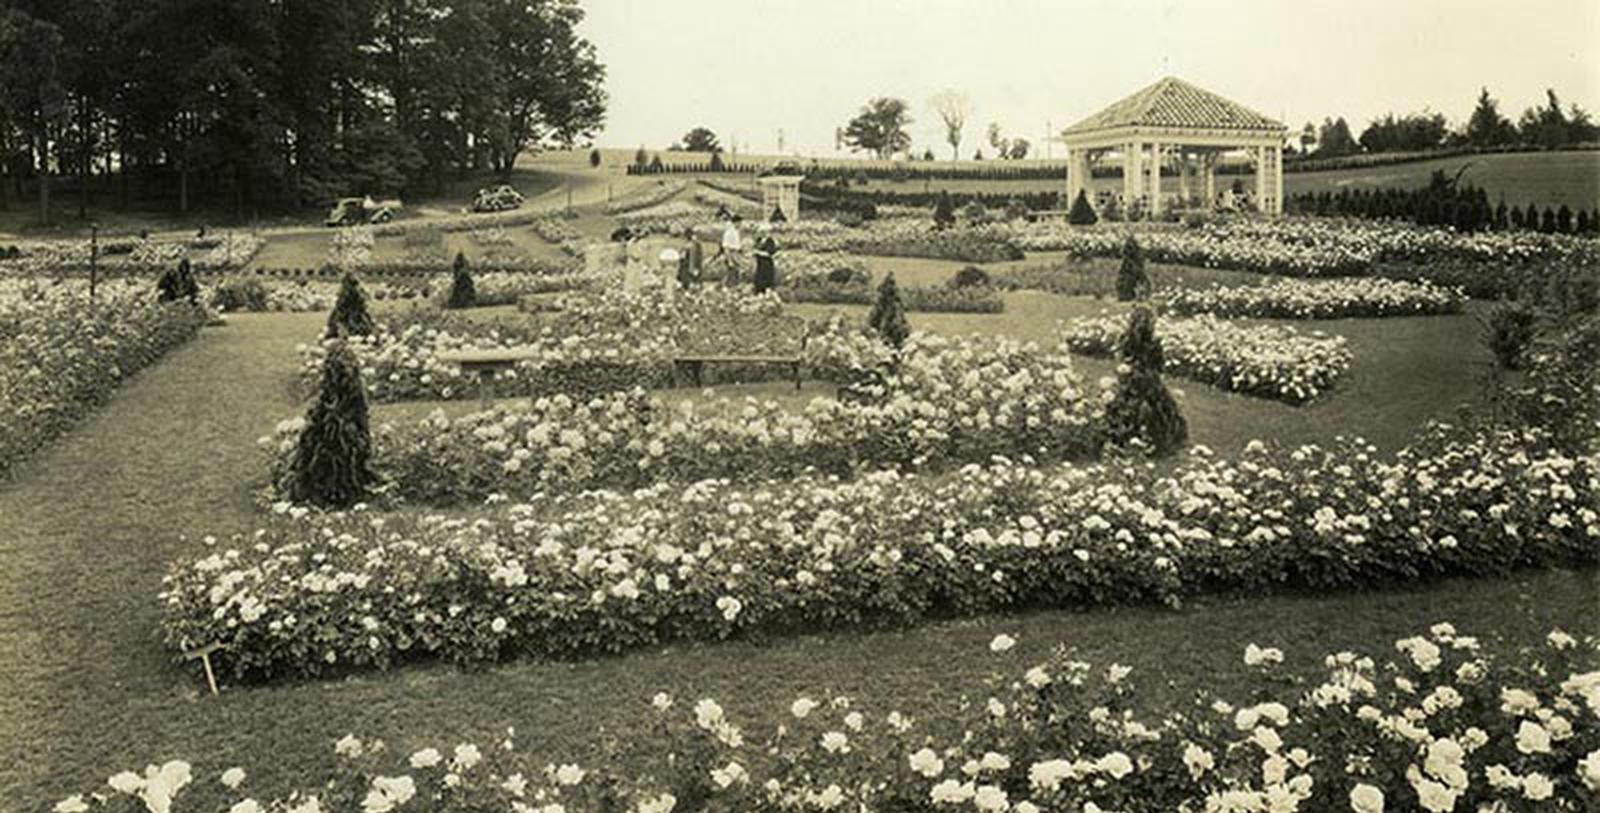 Historic Image of Garden The Hotel Hershey®, 1933, Member of Historic Hotels of America, in Hershey, Pennsylvania, Discover